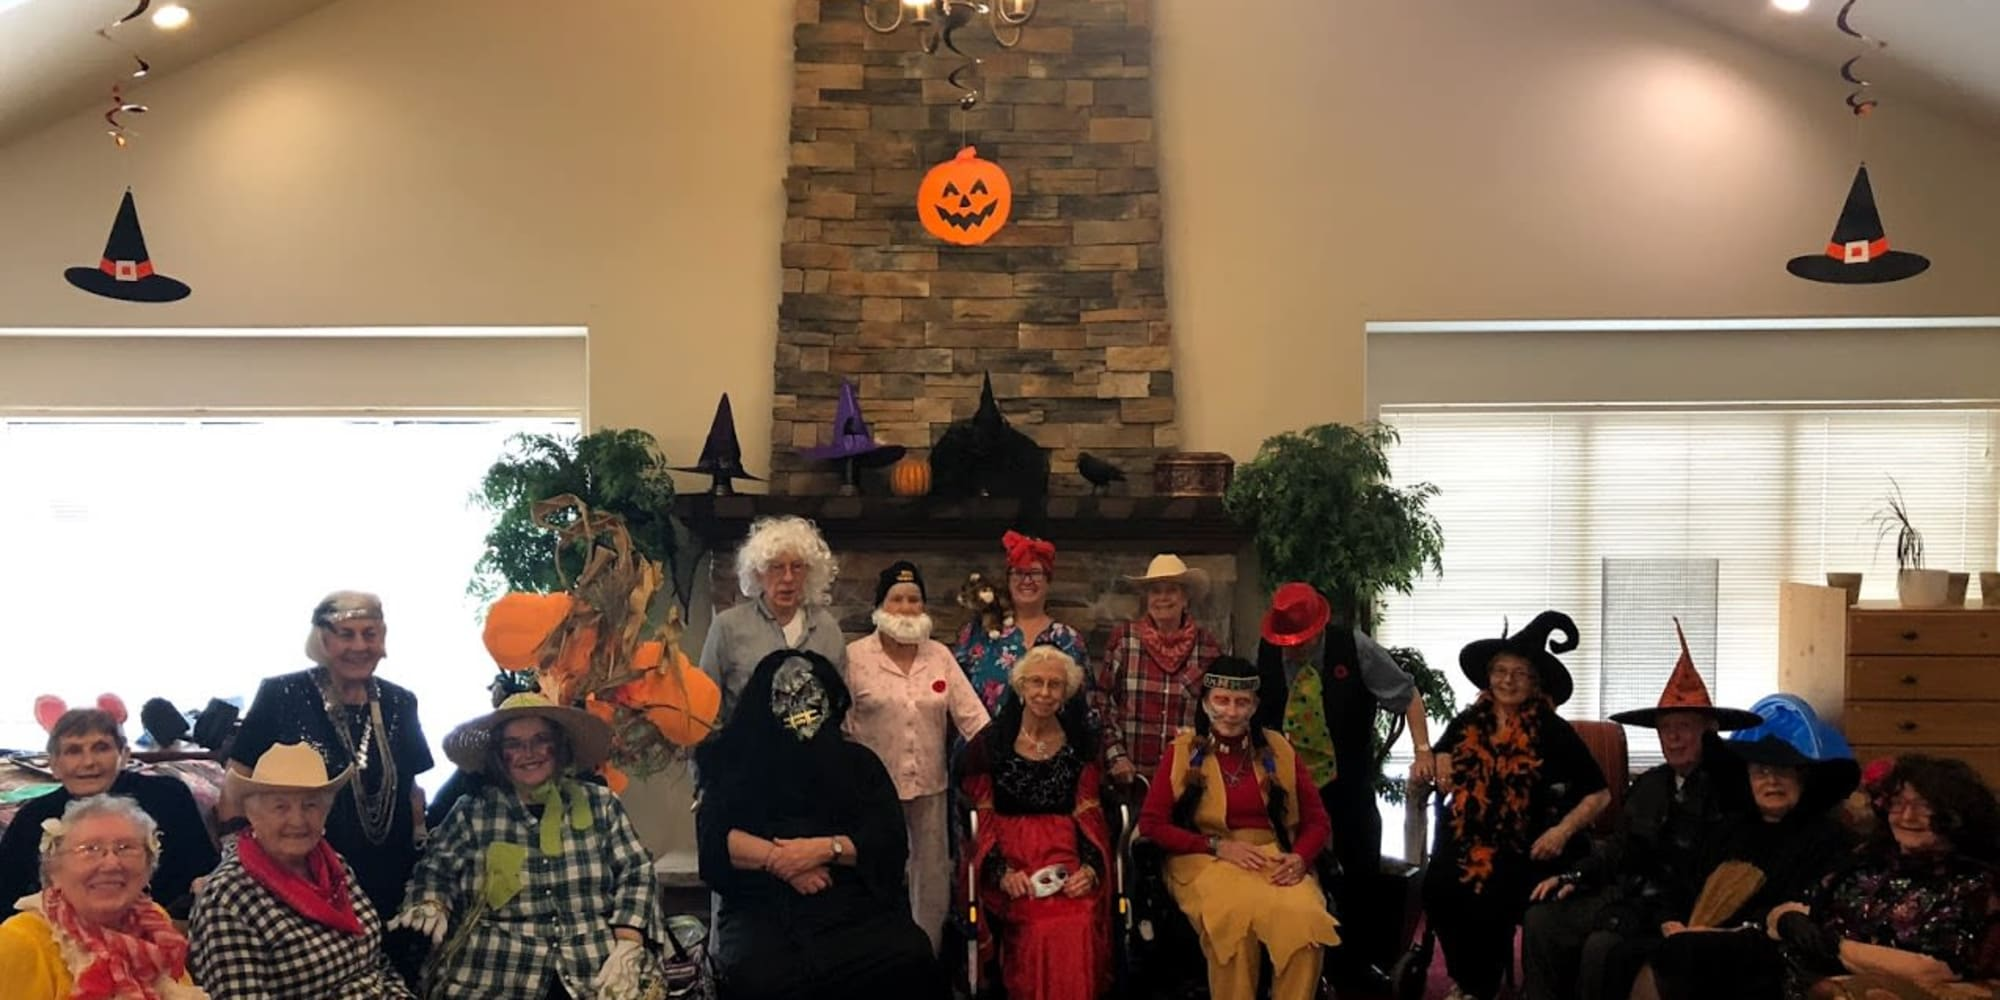 Residents dressed up for Halloween at Heritage Meadows Gracious Retirement Living in Cambridge, Ontario